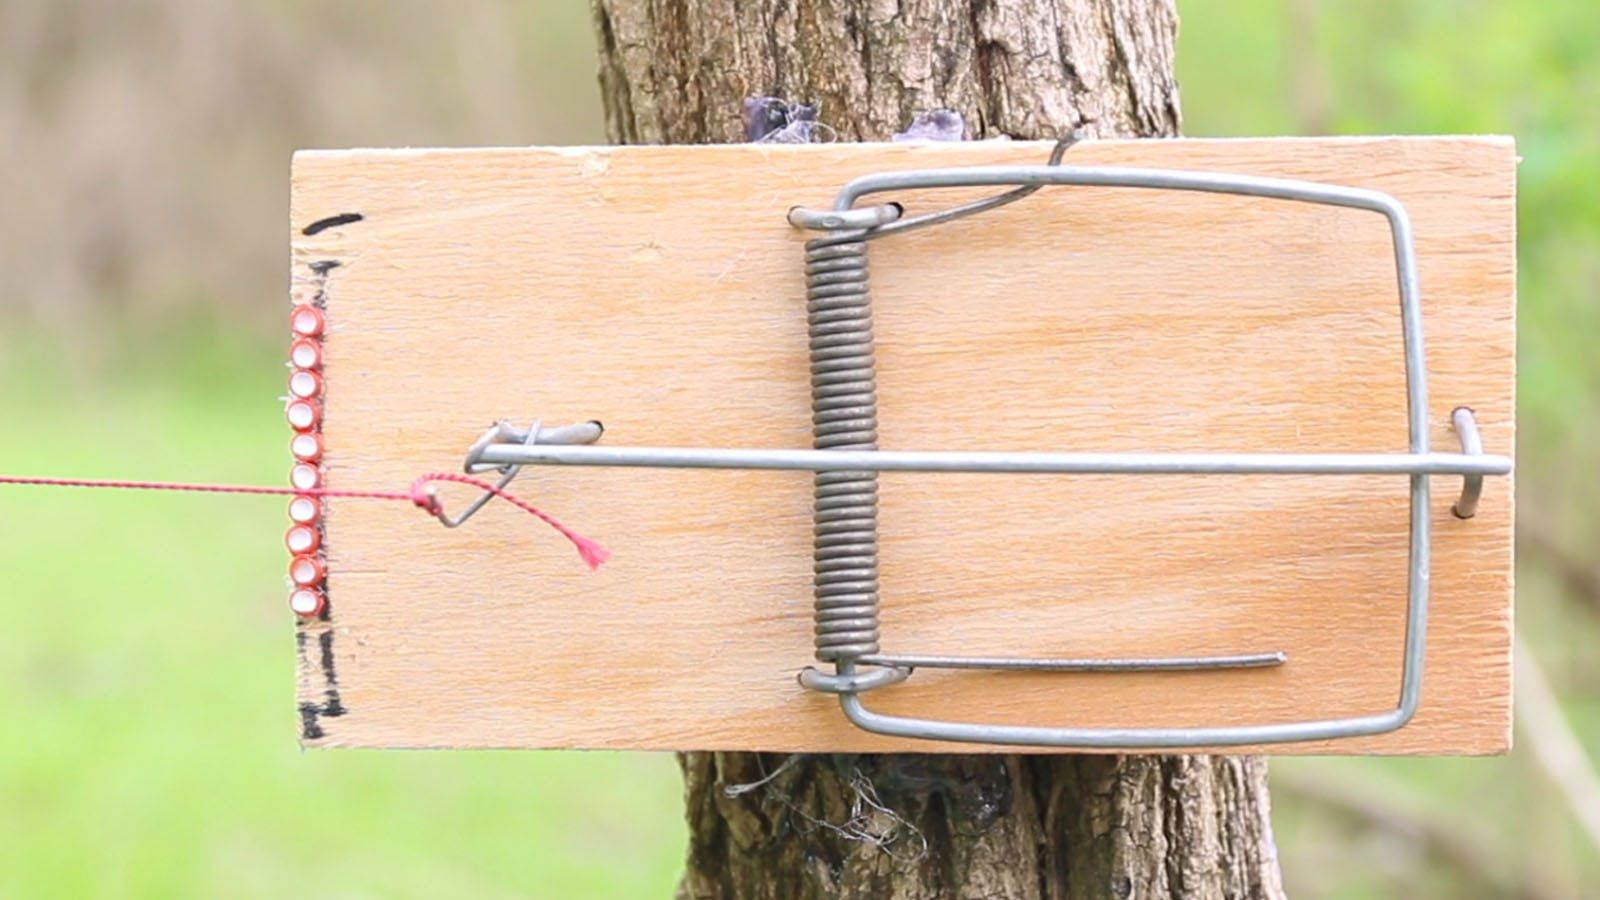 How to Make a Mousetrap Trip Wire Alarm | DIY | Bushcraft ...